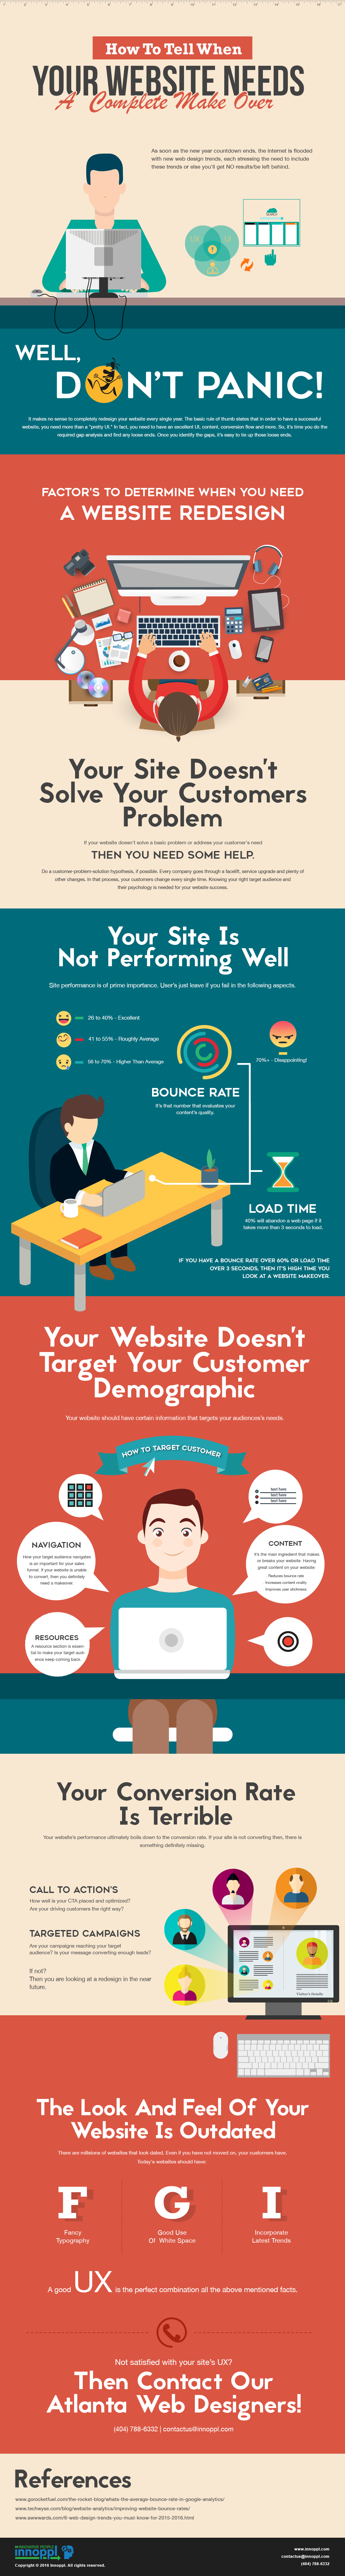 How To Tell When Your Website Needs A Complete Makeover